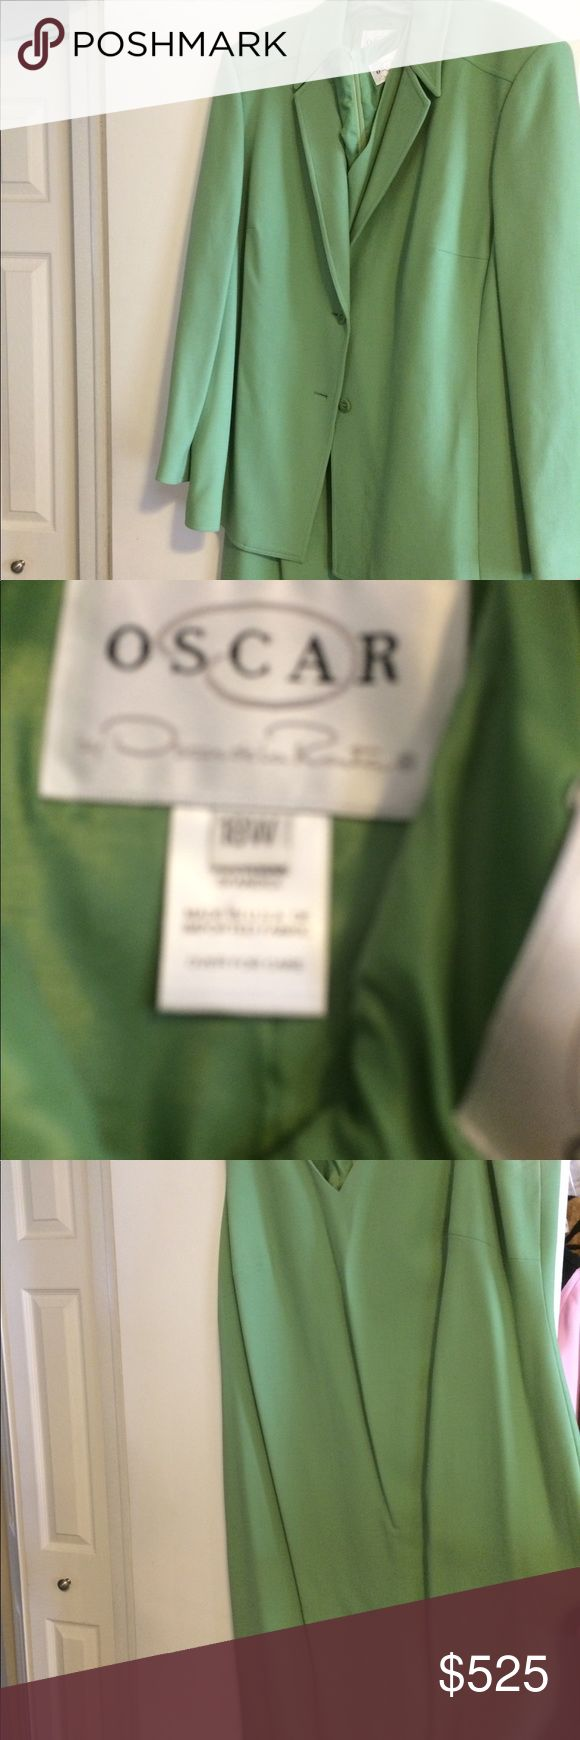 Oscar De La Renta dress suit! Worn once! Size 18W. BLACK FRIDAY SALE!!!! Beautiful Oscar De La Renta dress suit in celery green. Fully lined. 95% wool. Size 18W. Originally $1950!!!! Own now for a fraction of the cost! Great buy! Dress is sleeveless and has a V neck. Back zipper. Wear the dress alone or with the jacket. You can also switch it up and pair the jacket with slacks or another dress! Dresses